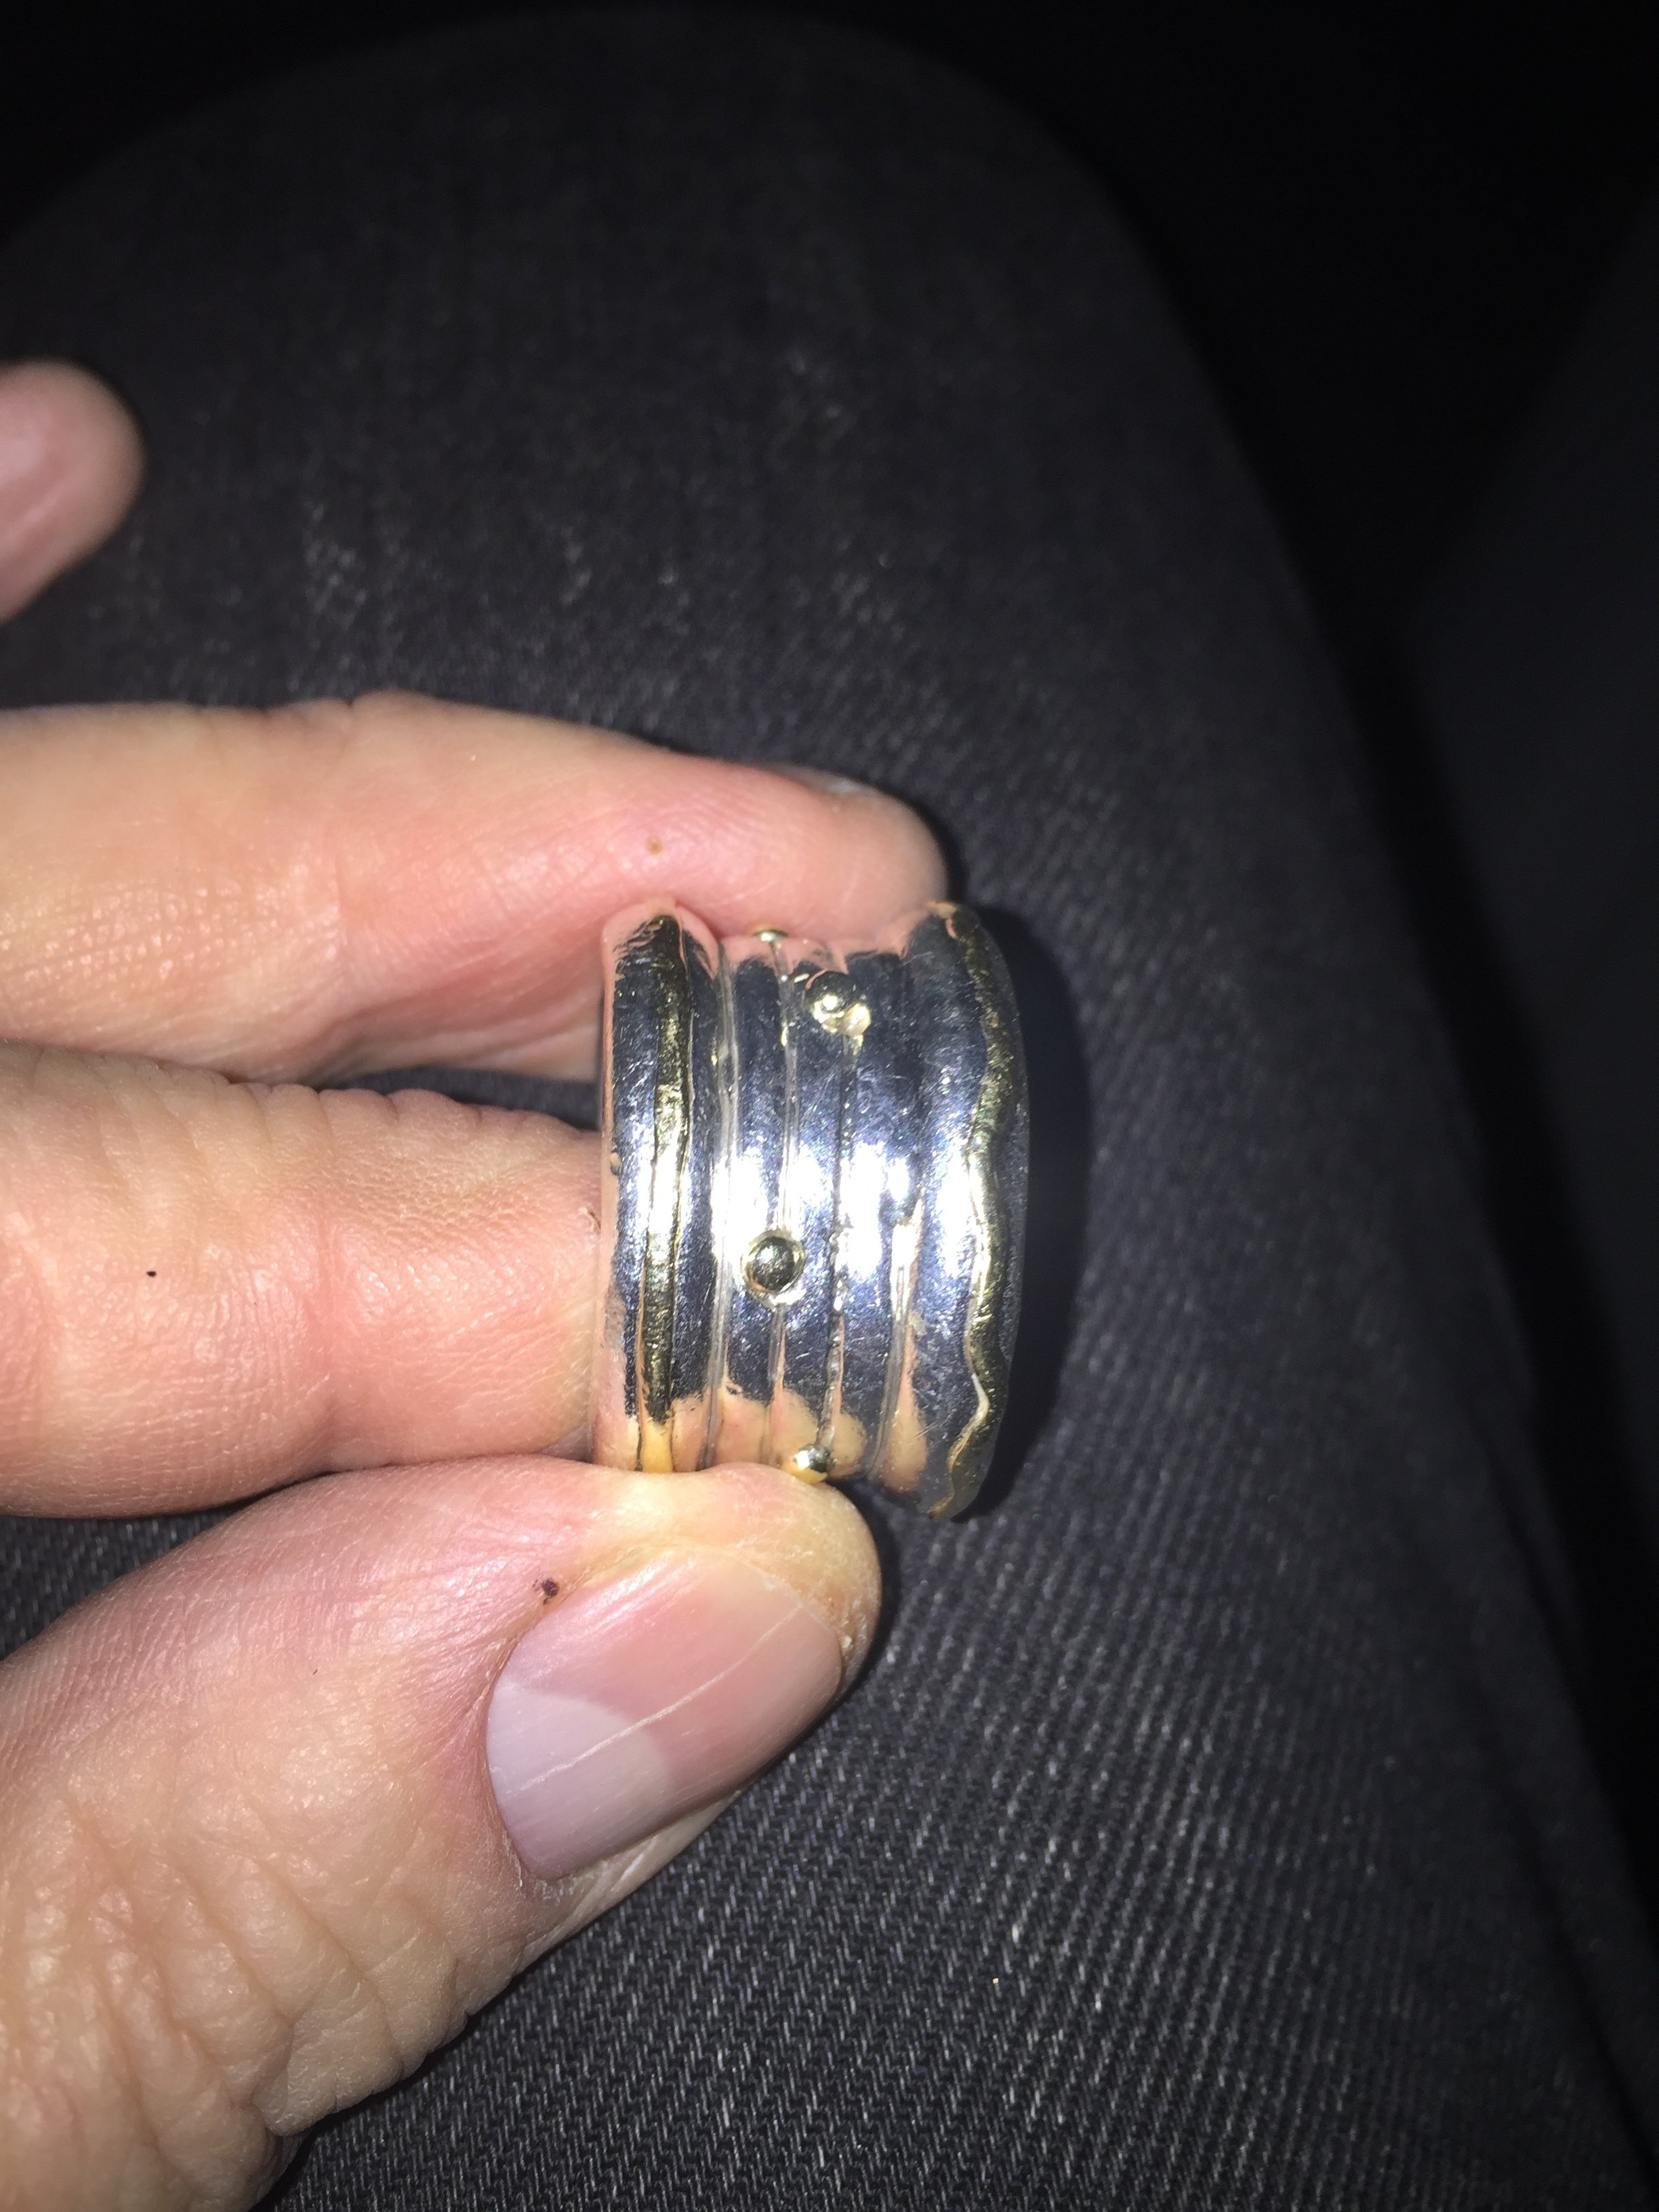 Im trying to solder gold wire onto a silver ring shank - Jewelry ...